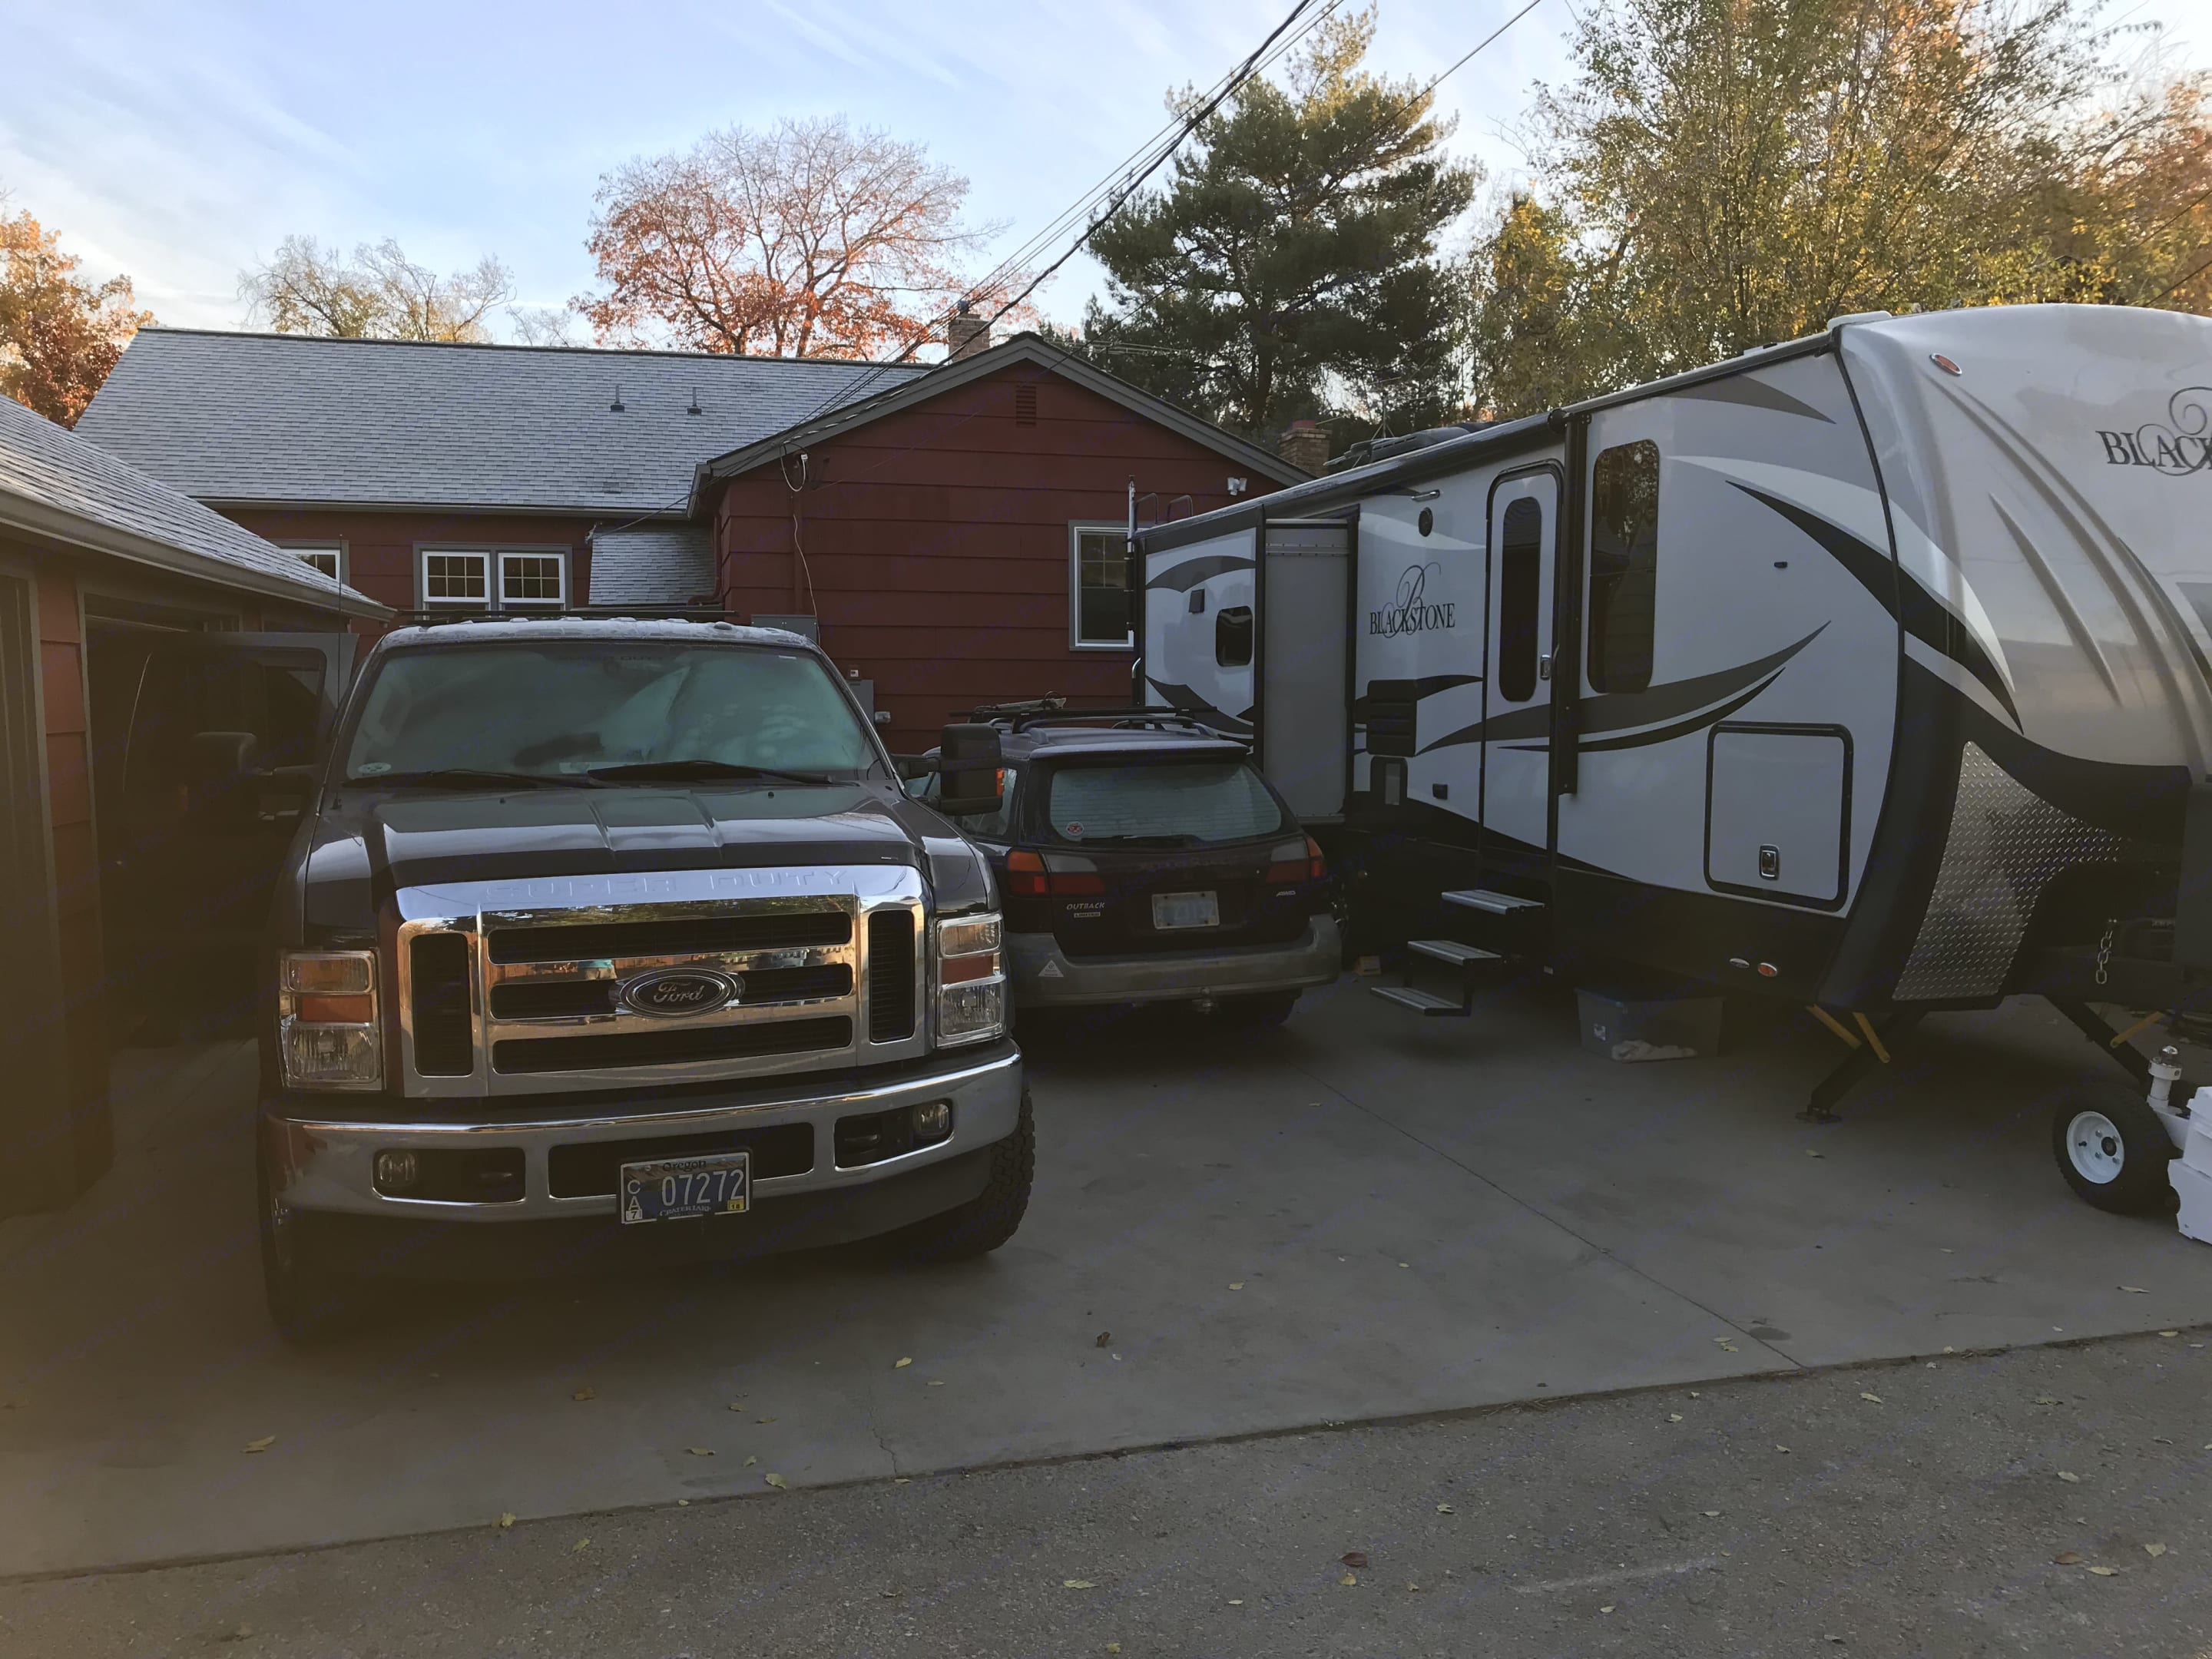 Parked in the driveway of our Boise home.. Outdoors Rv (made in La Grande Oregon) Black Stone 270 CISB 2016